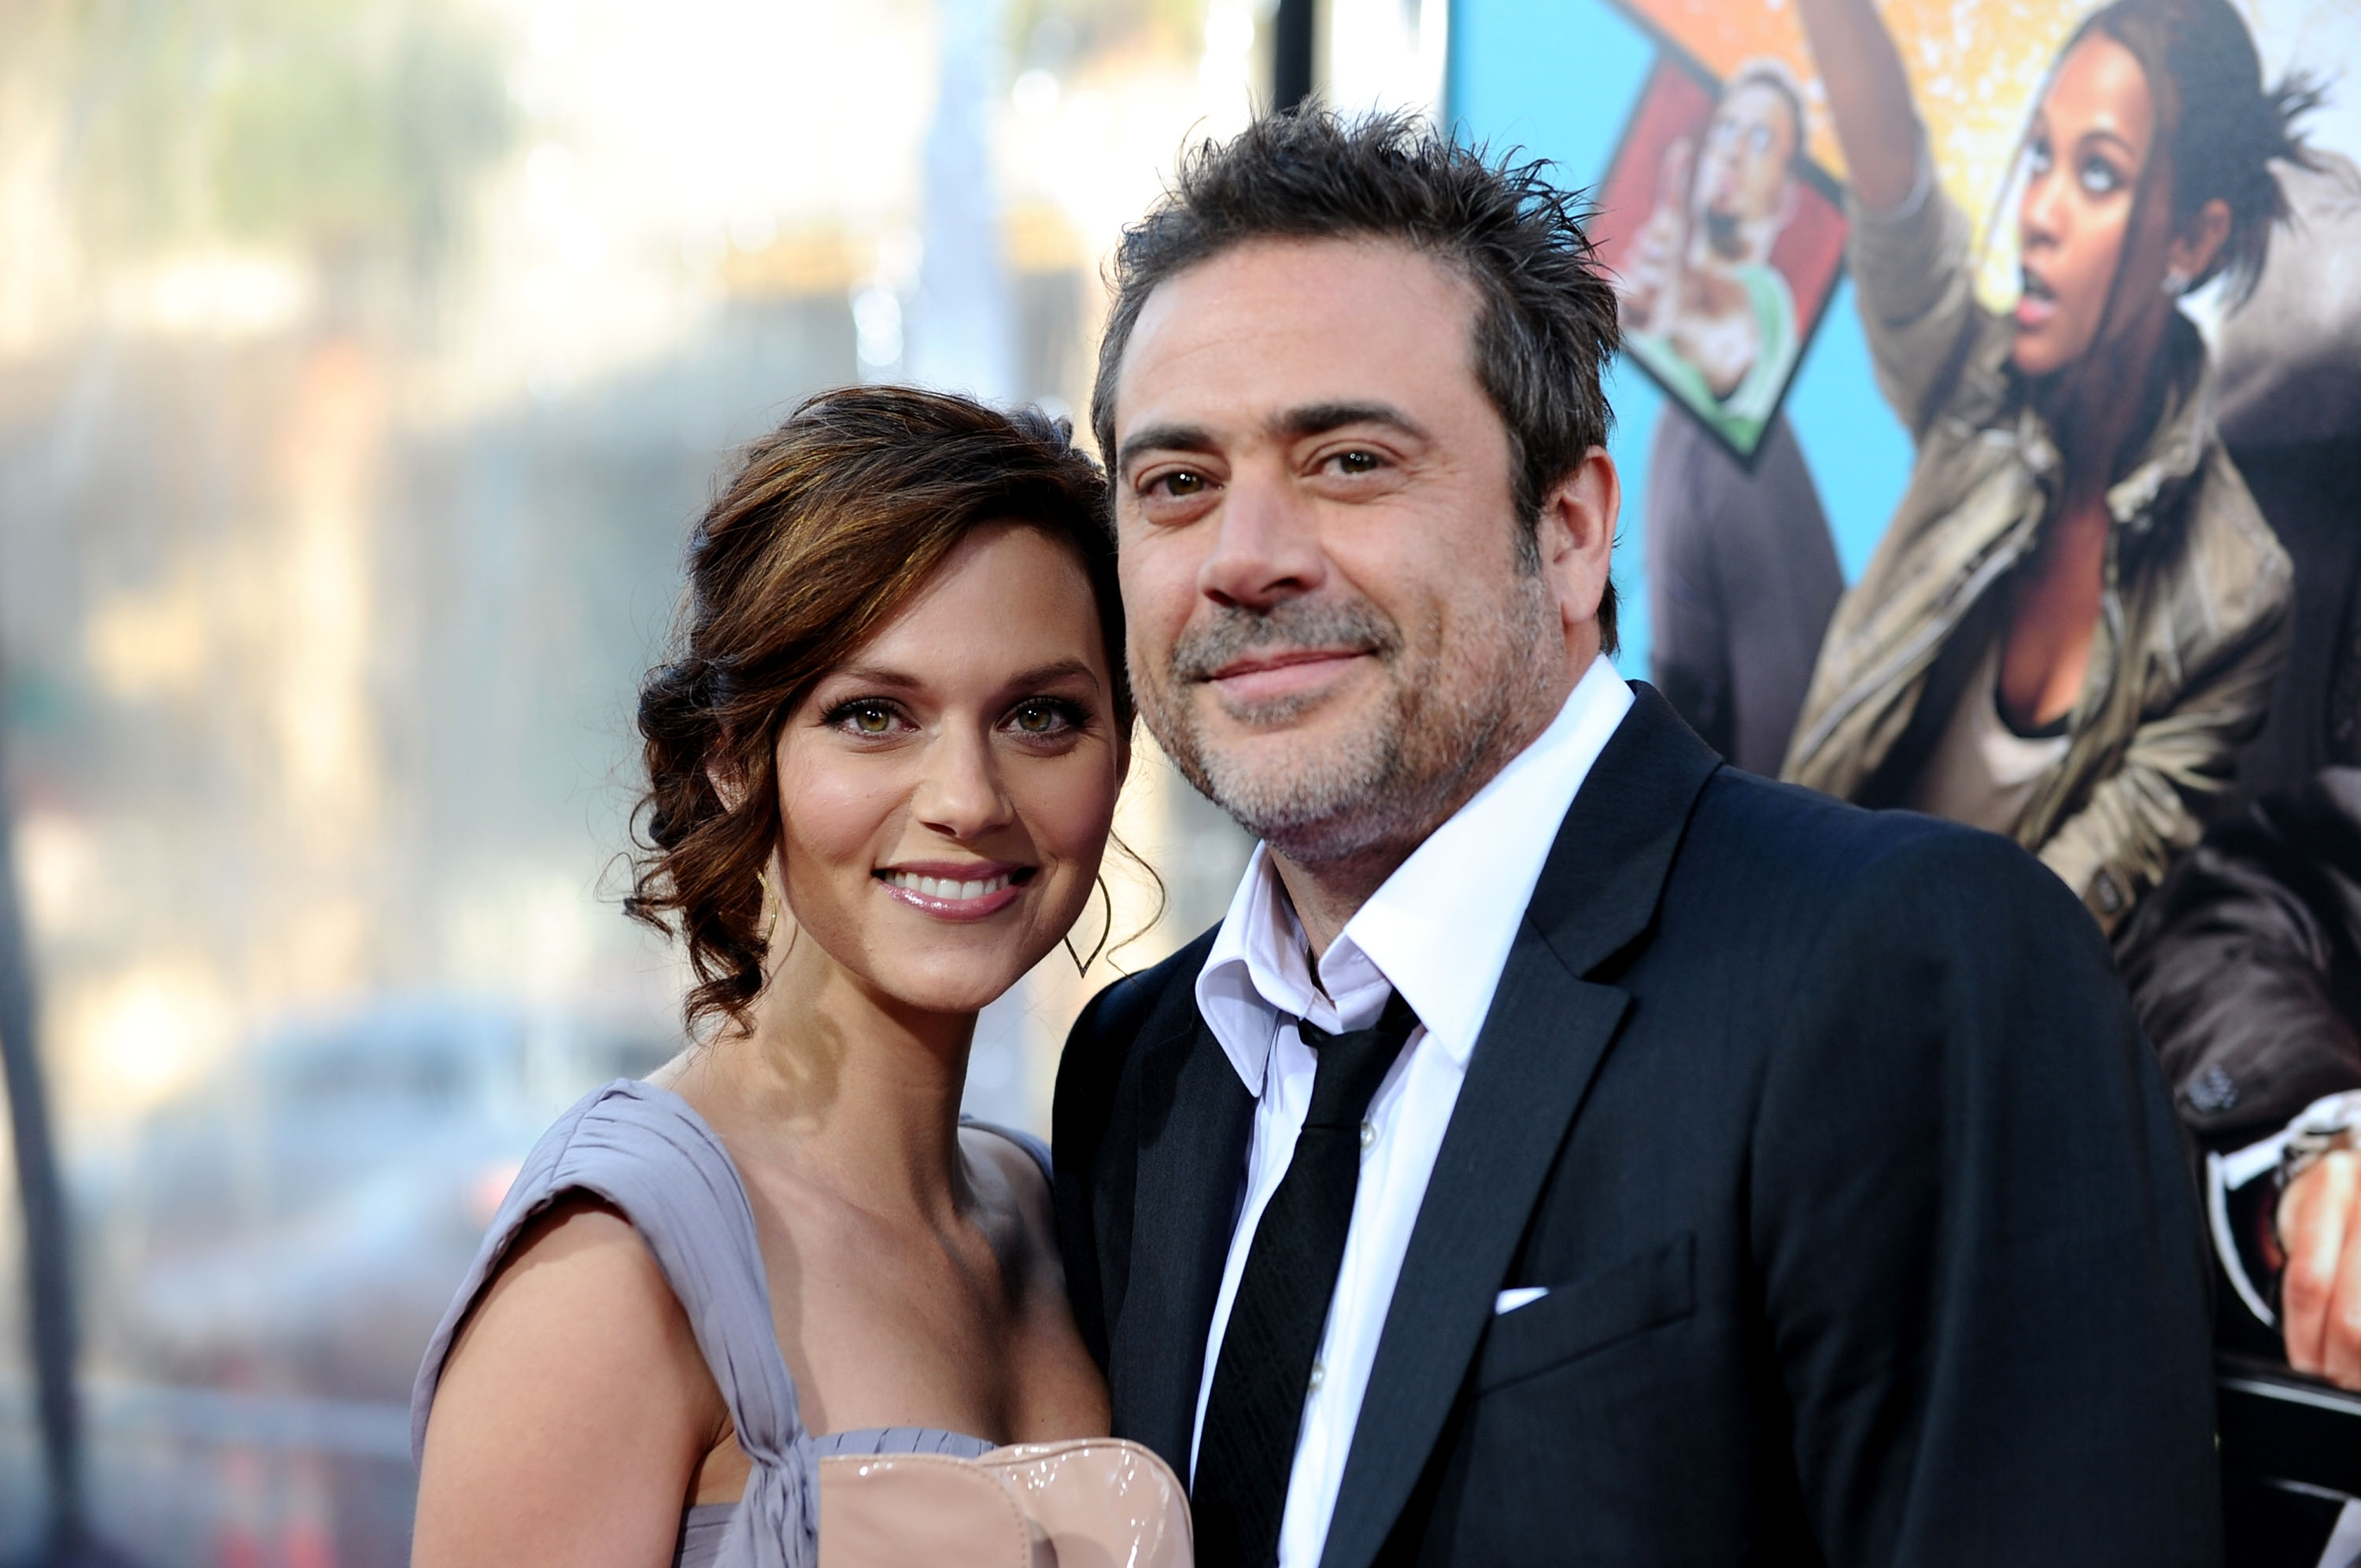 Hilarie Burton and Jeffrey Dean Morgan arrive at Warner Bros. 'The Losers' premiere